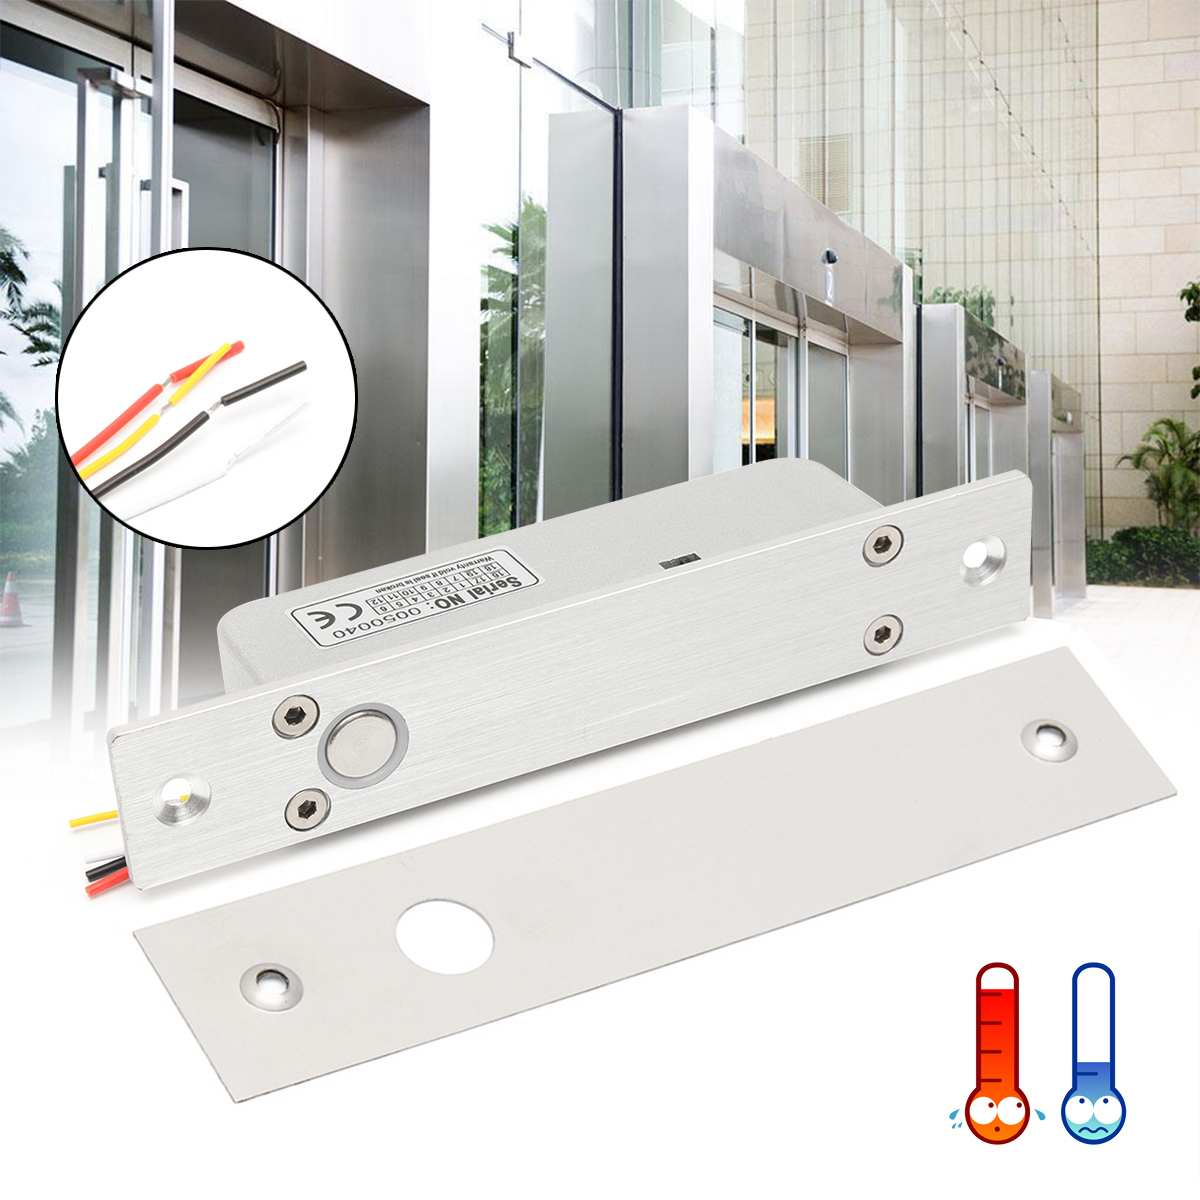 12/24V Electric Temperature Bolt Lock for Door Delay Lock Assembly Solenoid Lock Tongue For Door Drawer Aluminium Alloy12/24V Electric Temperature Bolt Lock for Door Delay Lock Assembly Solenoid Lock Tongue For Door Drawer Aluminium Alloy